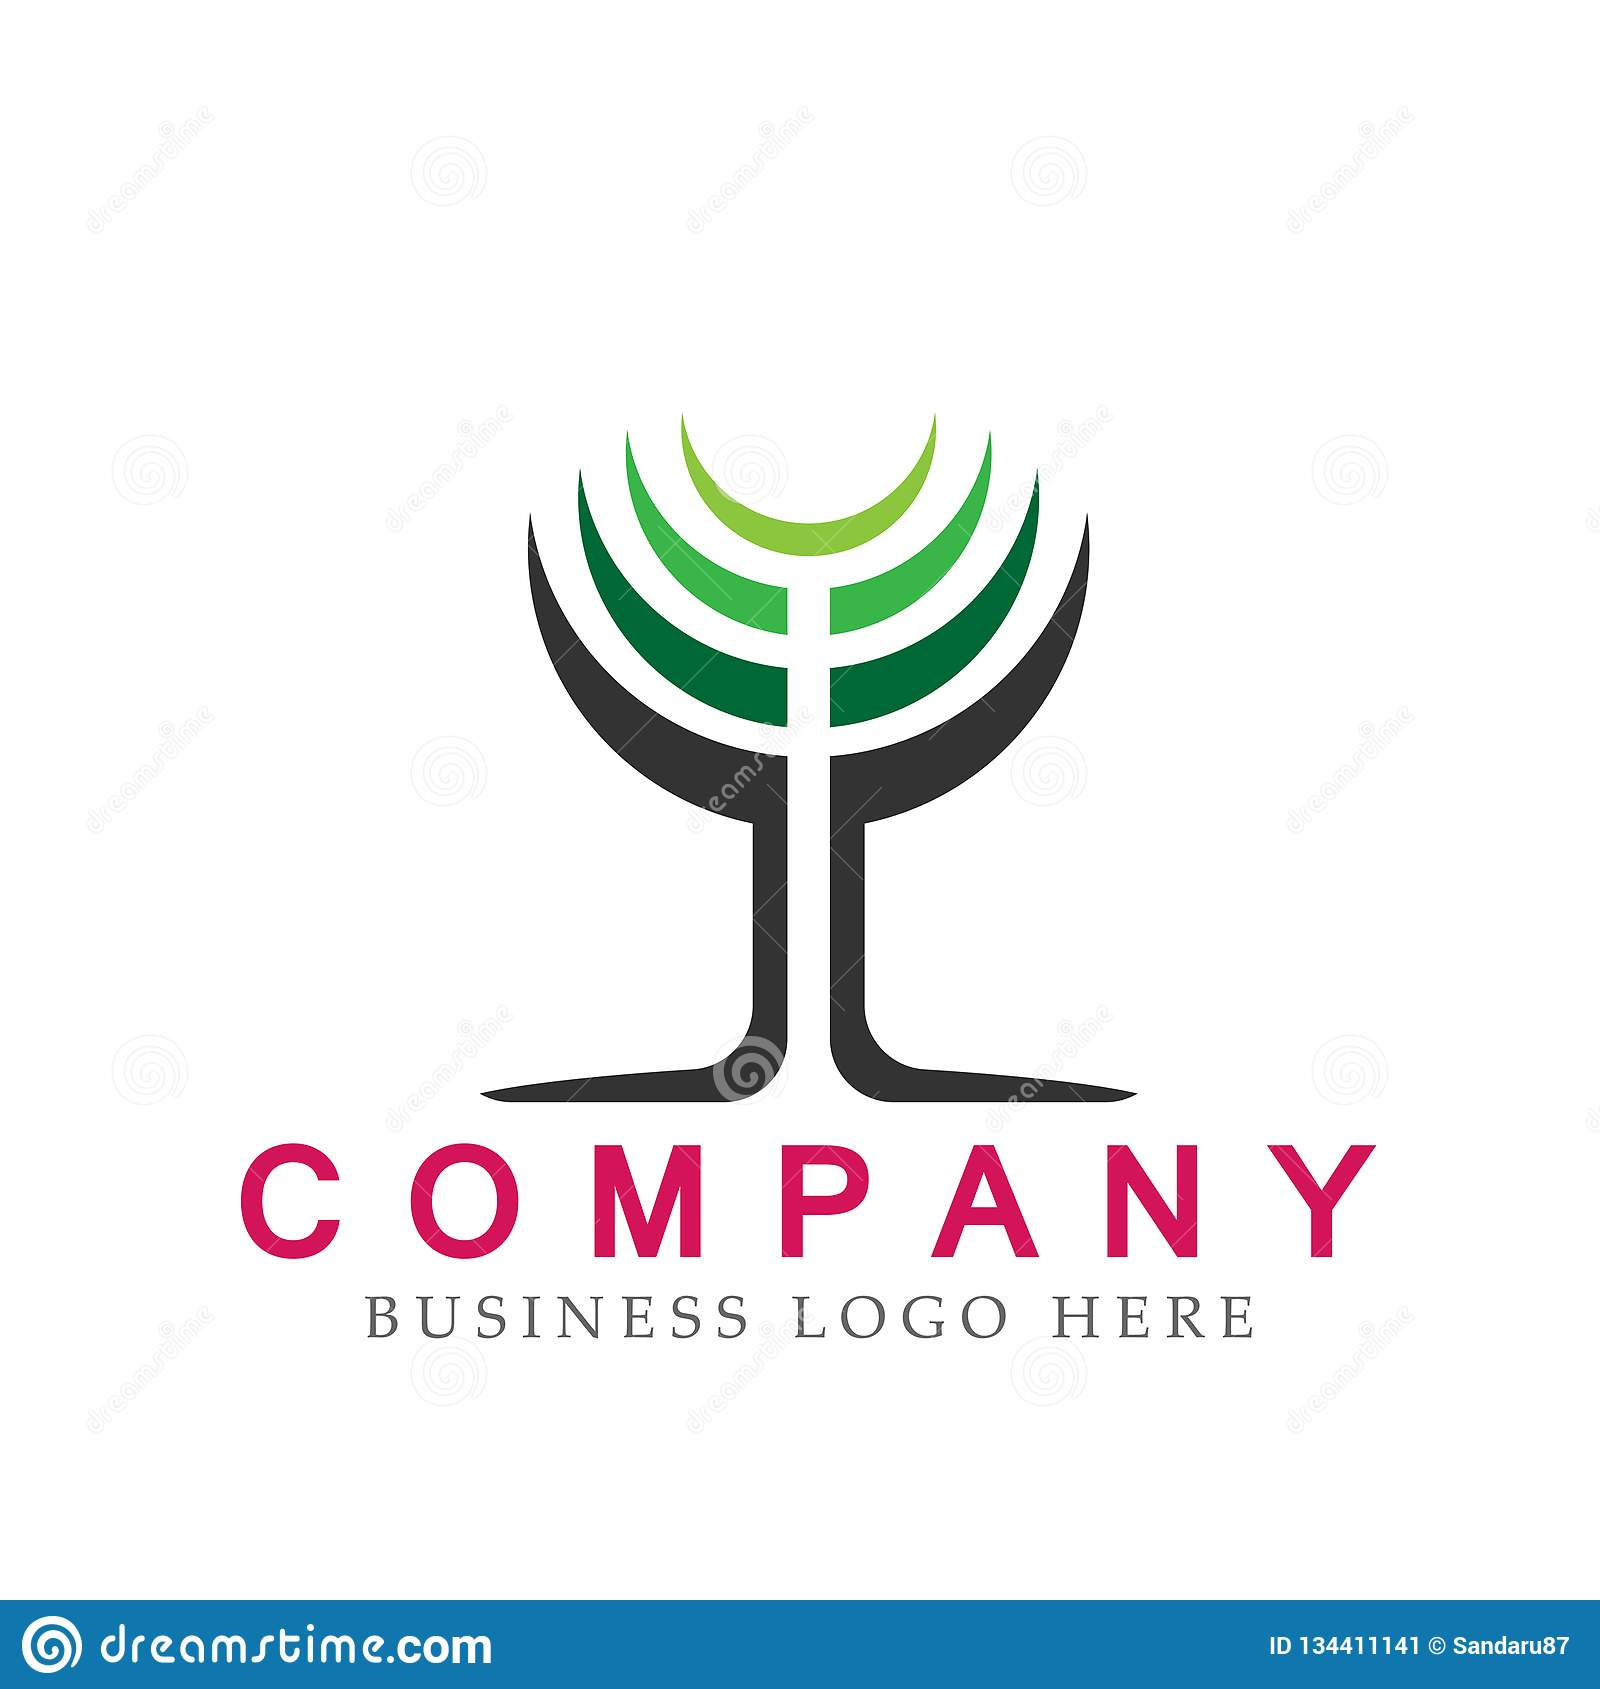 Abstract modern circle shaped tree logo icon element concept vector illustrations on white background